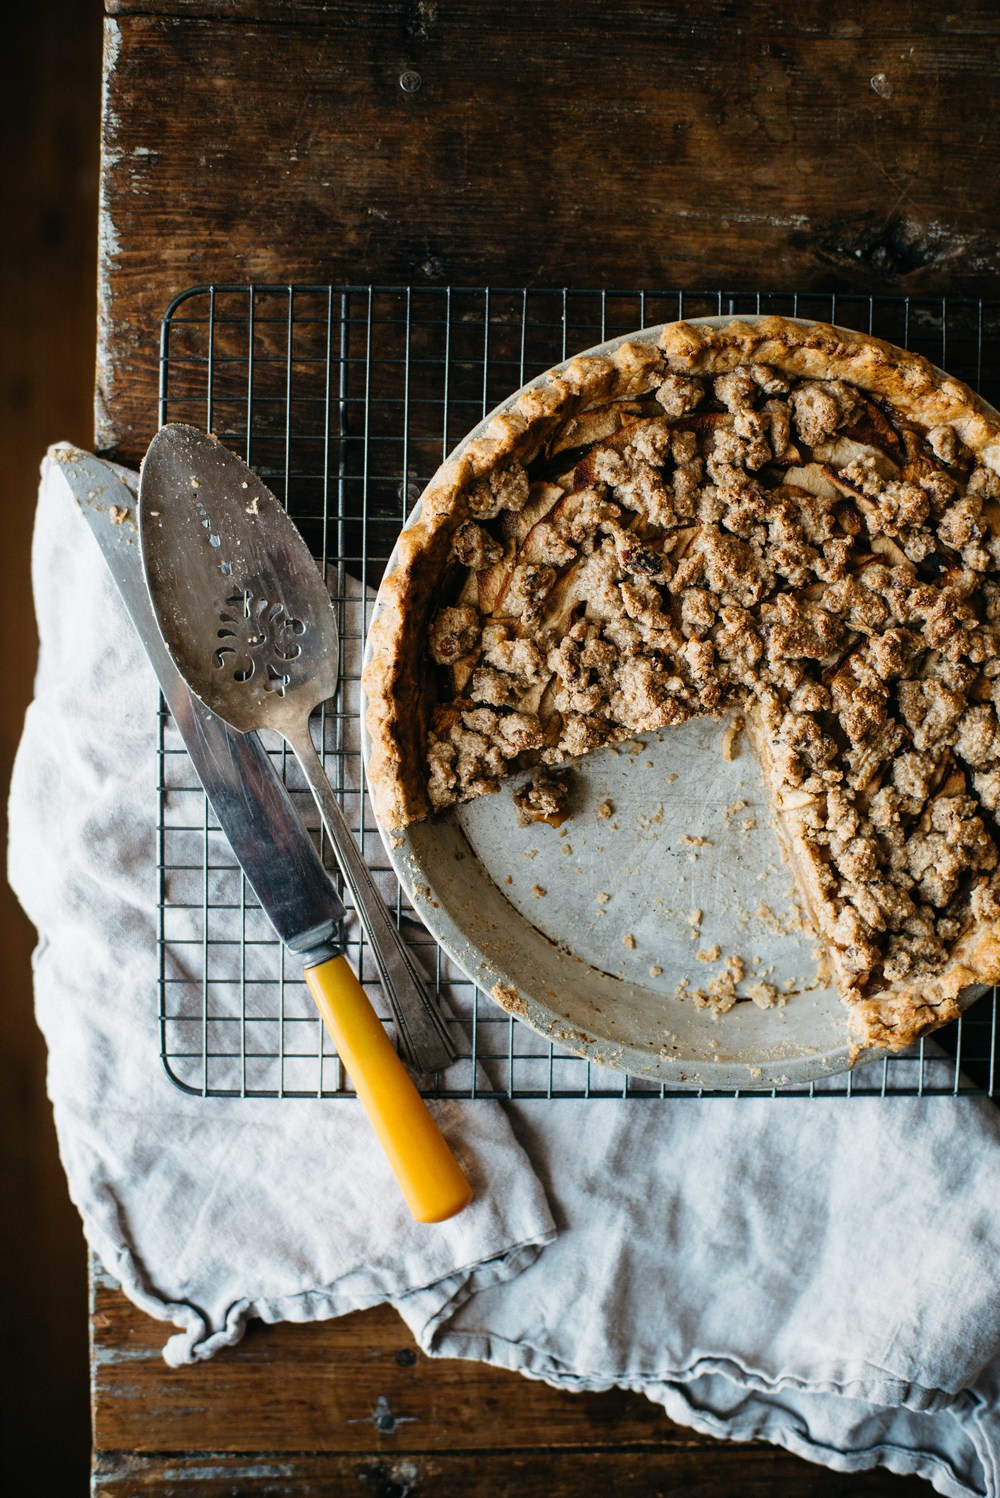 ginger-apple crumble pie